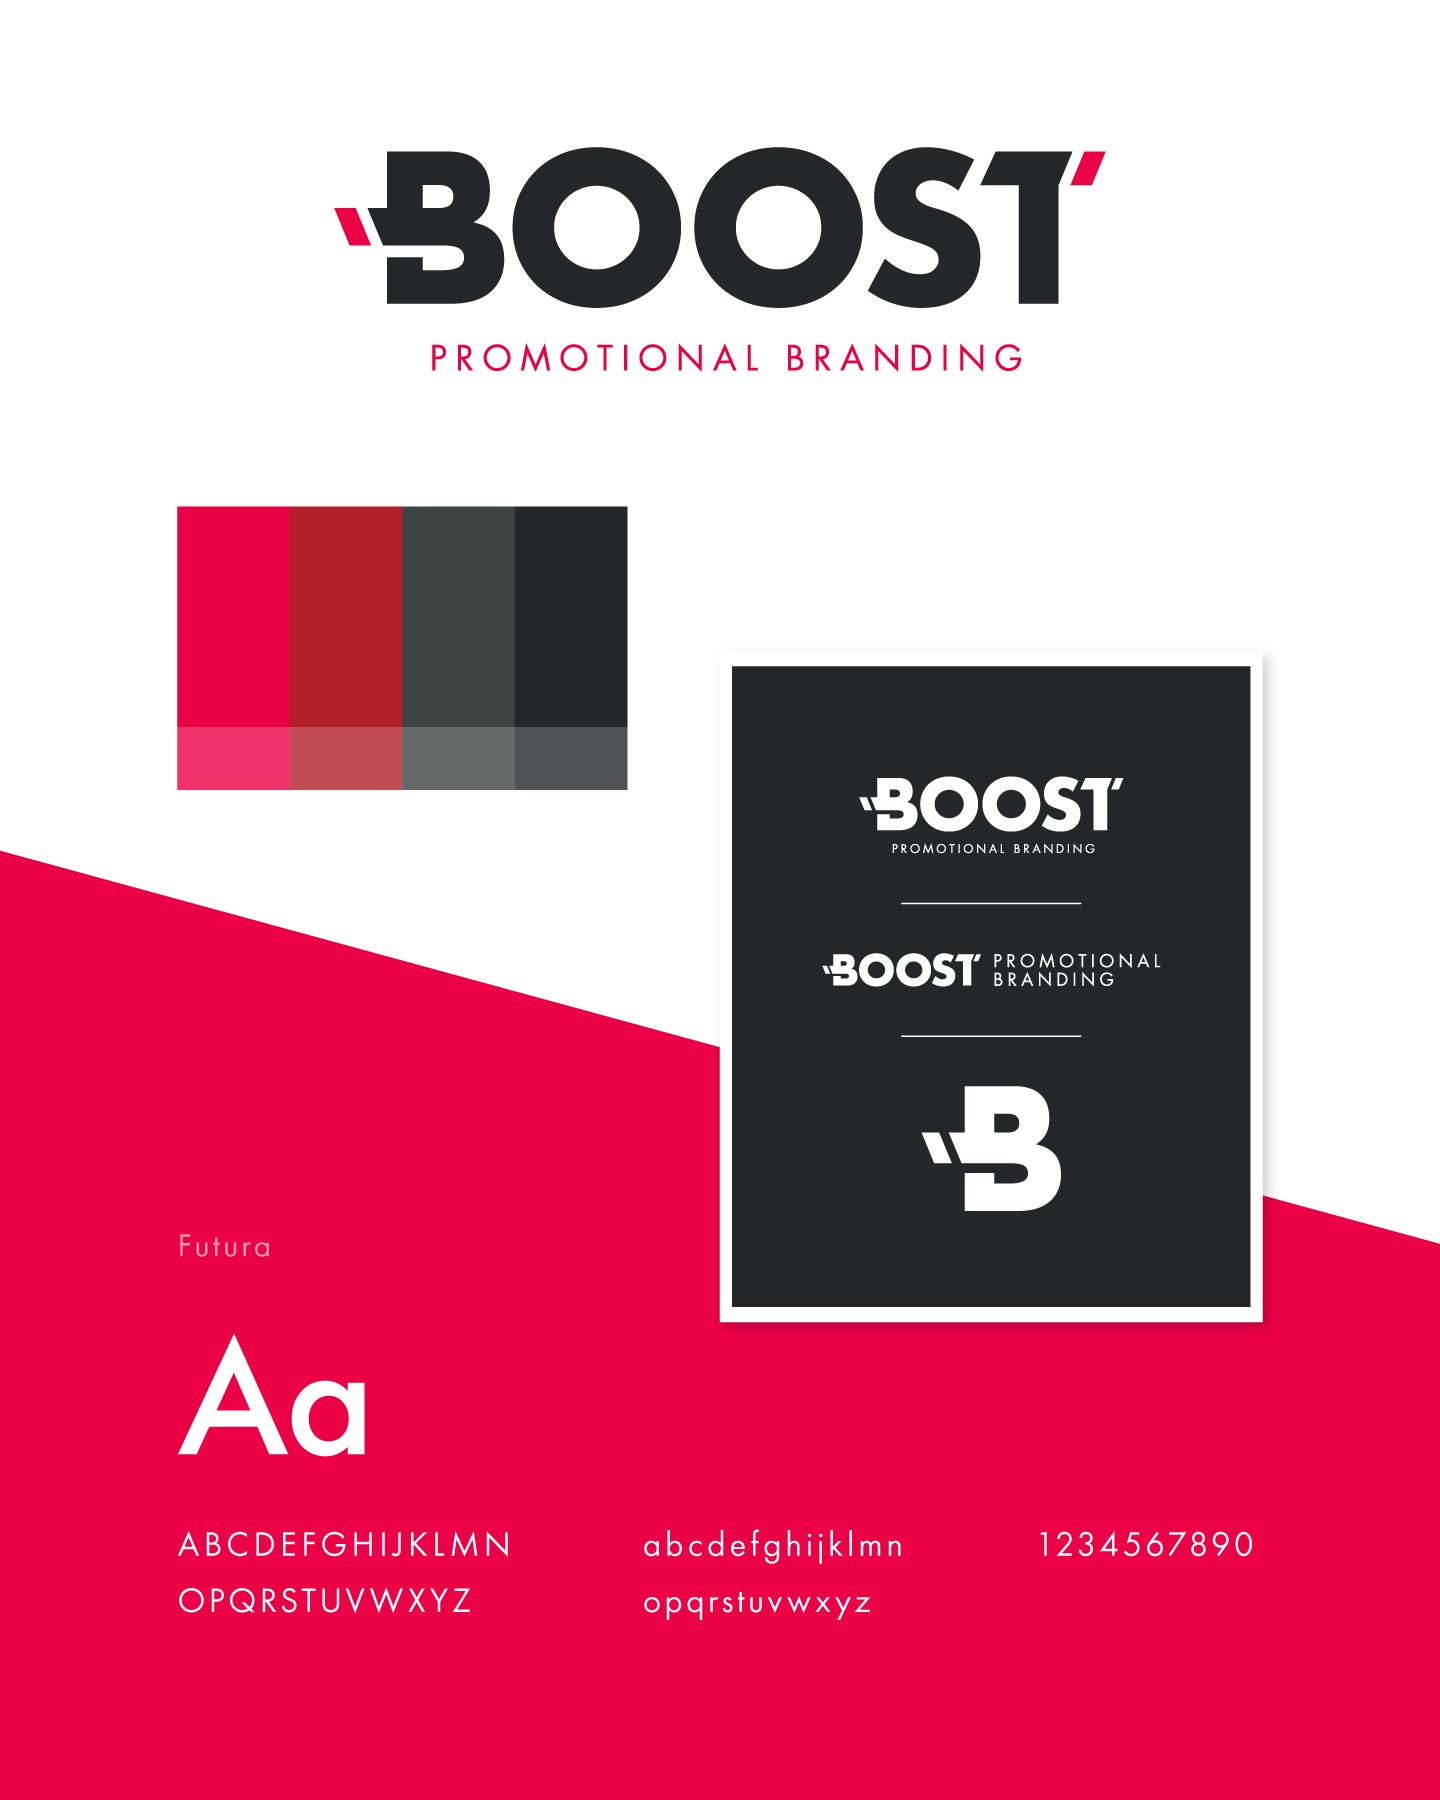 Logo, colors, and fonts for Boost Promotional Branding